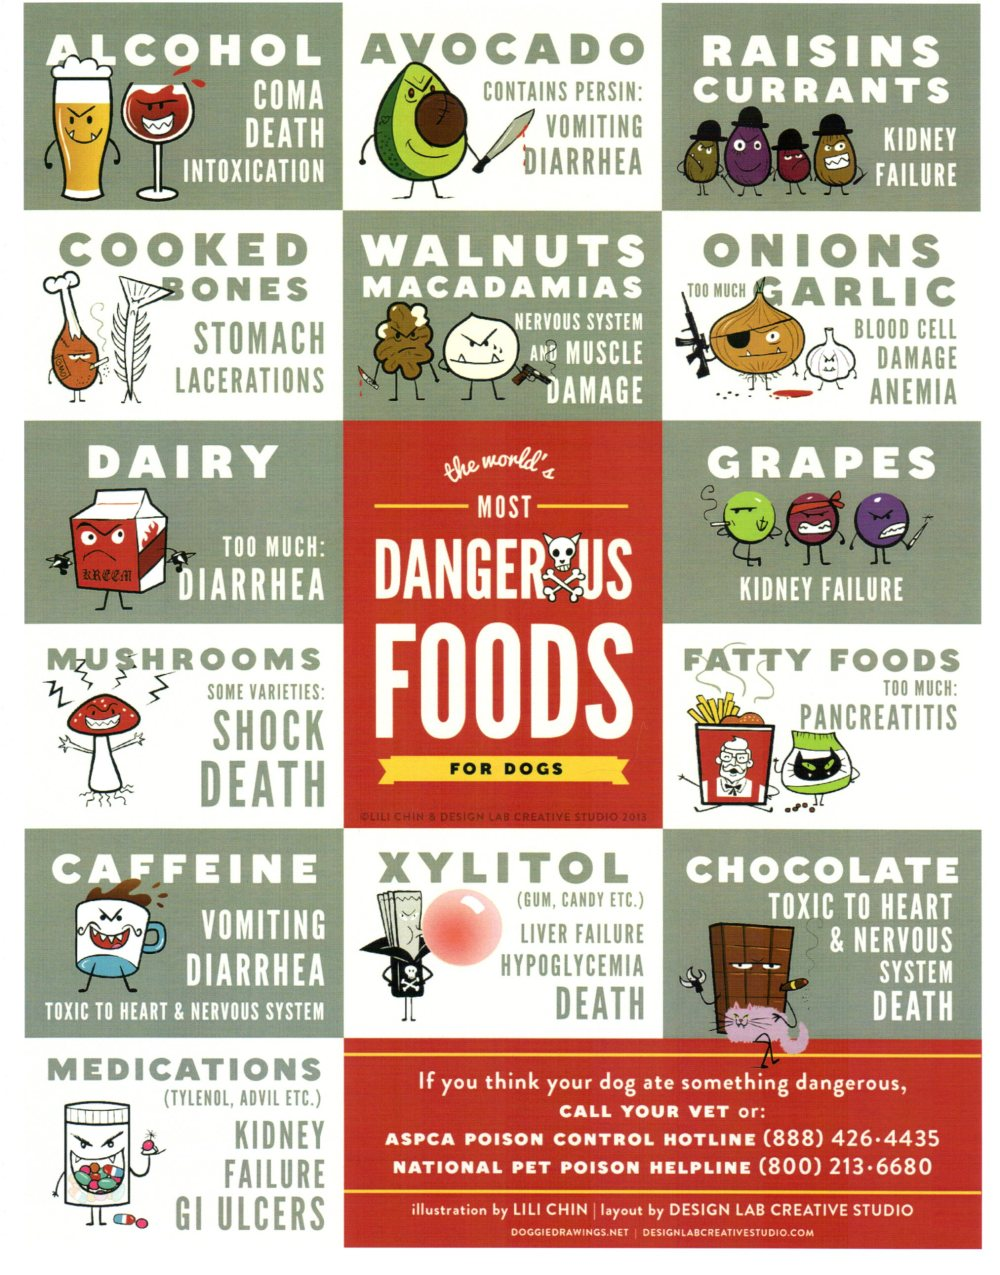 toxic-foods-for-dogs